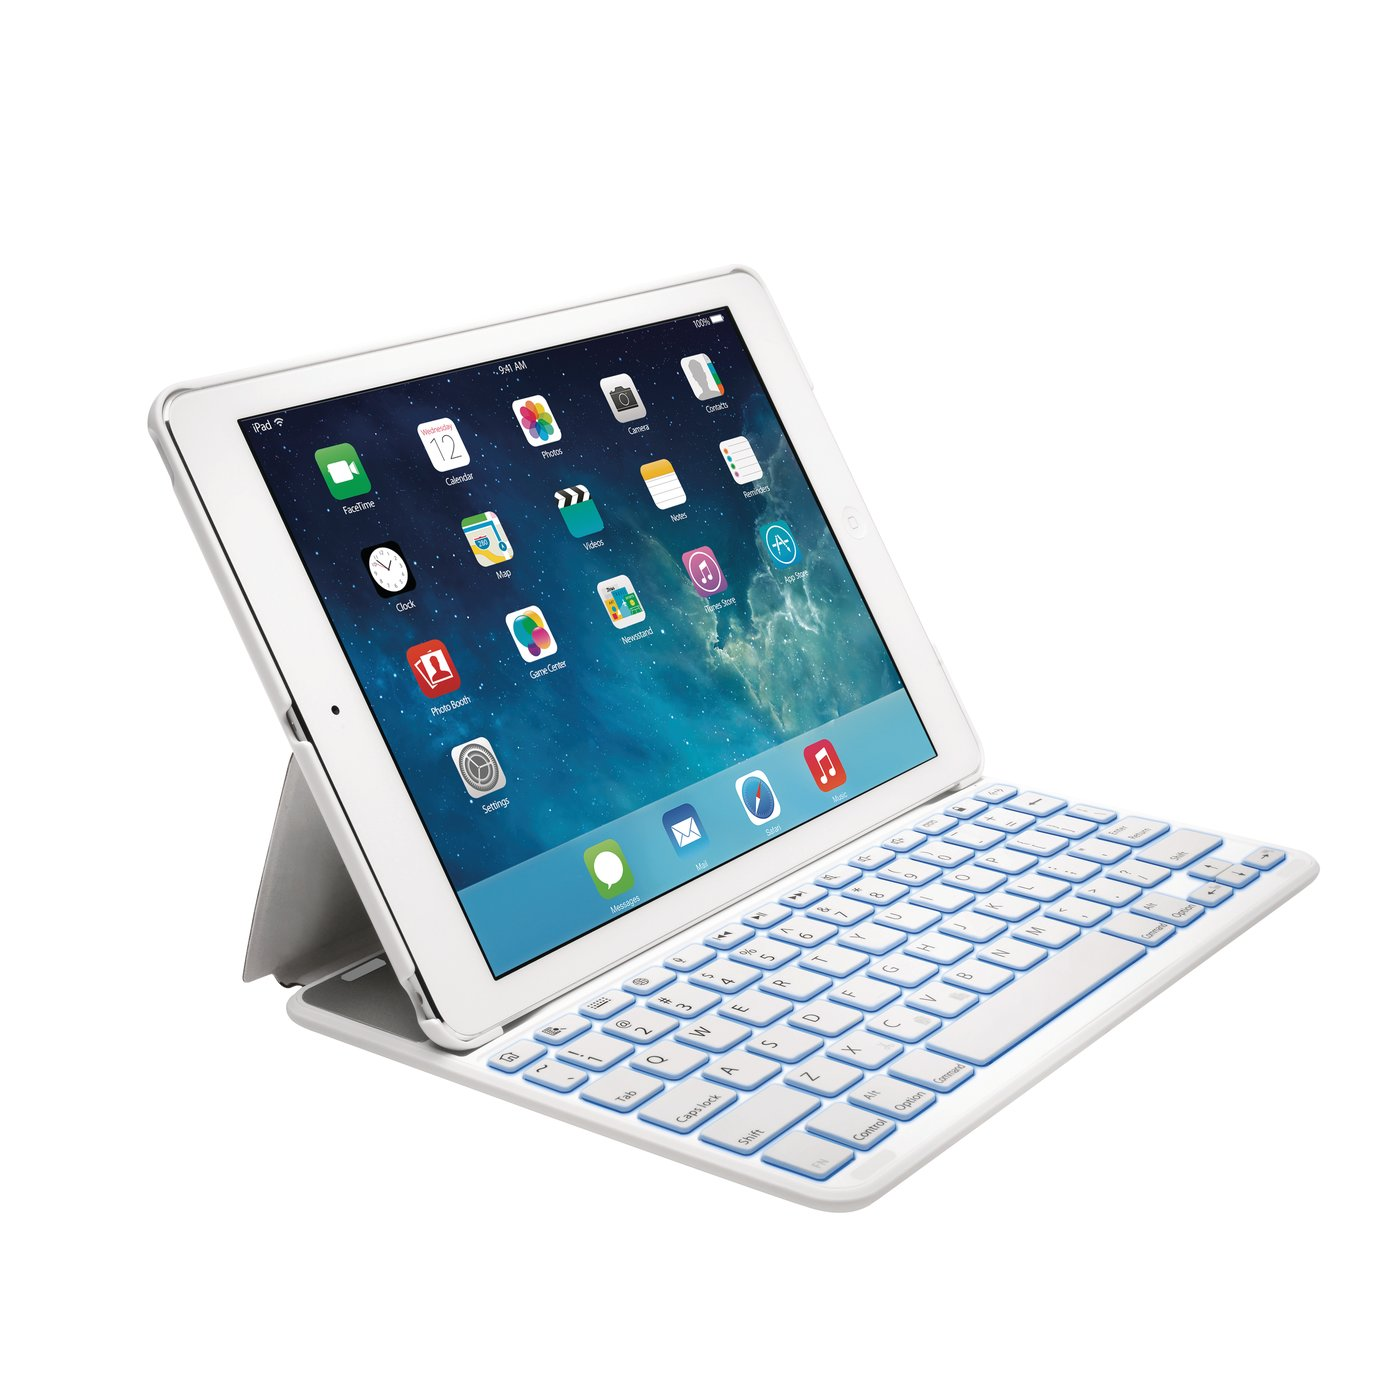 Products - Tablet & Smartphone Accessories - Keyboard Cases - KeyFolio ...